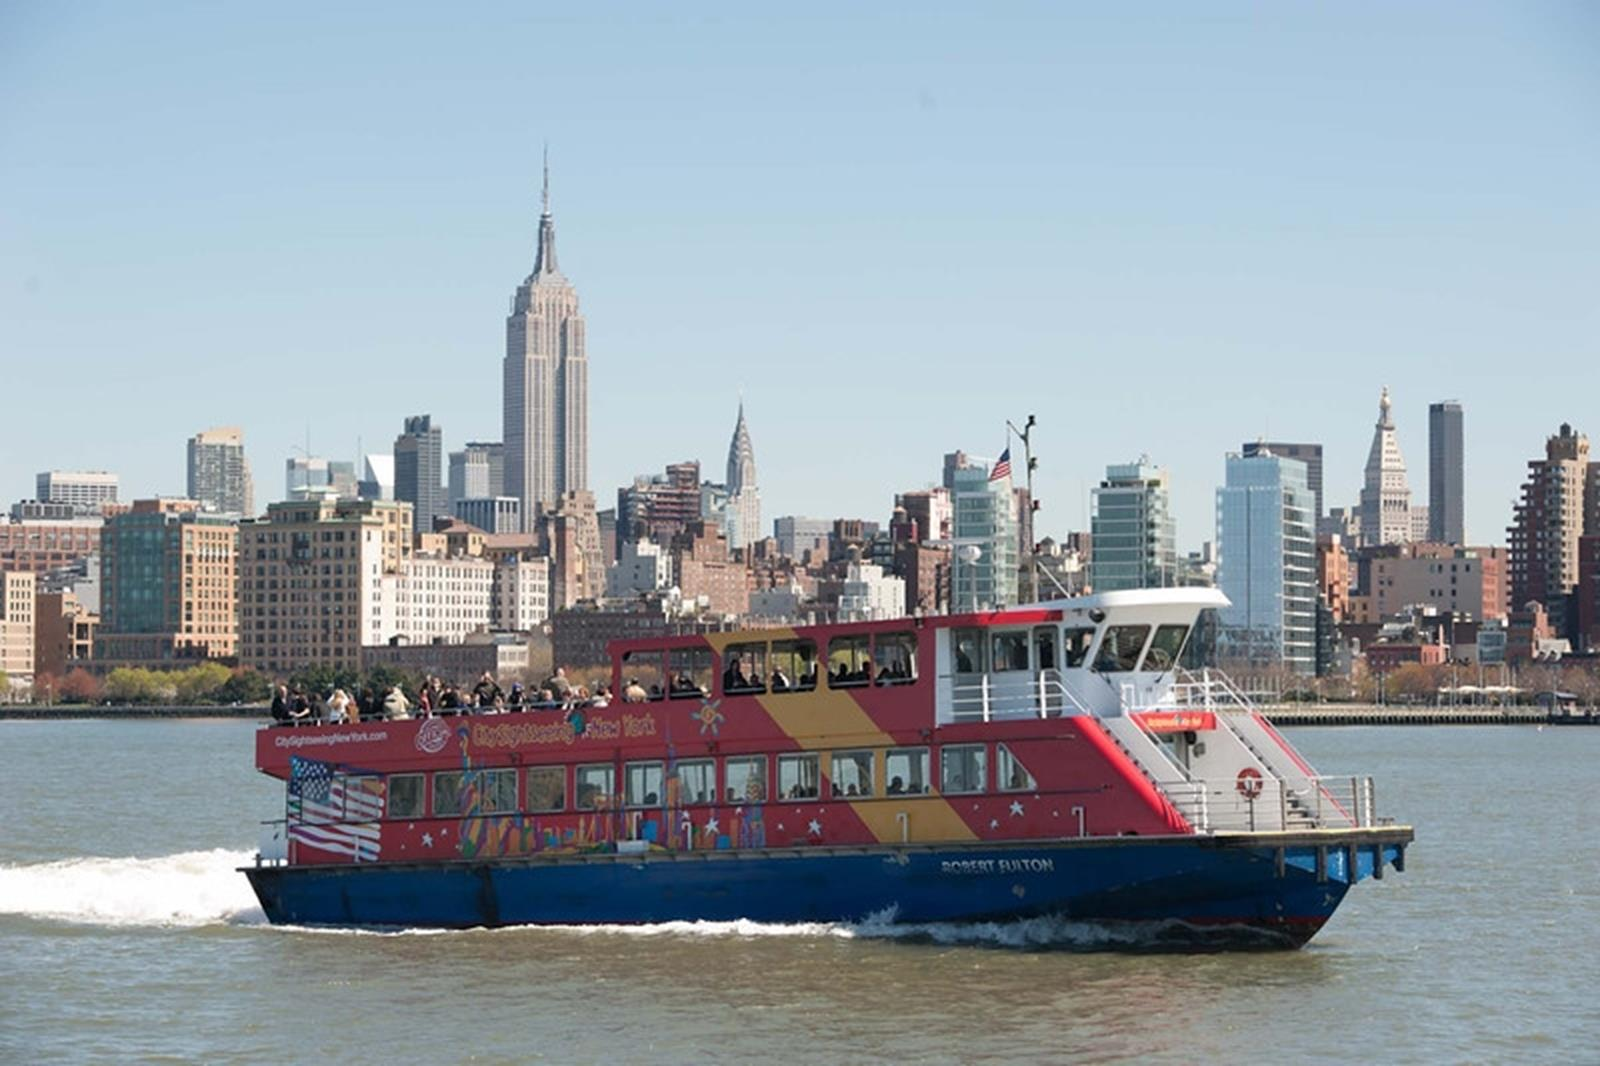 CitySightseeing New York® cruises feature panoramic views of the city skyline.